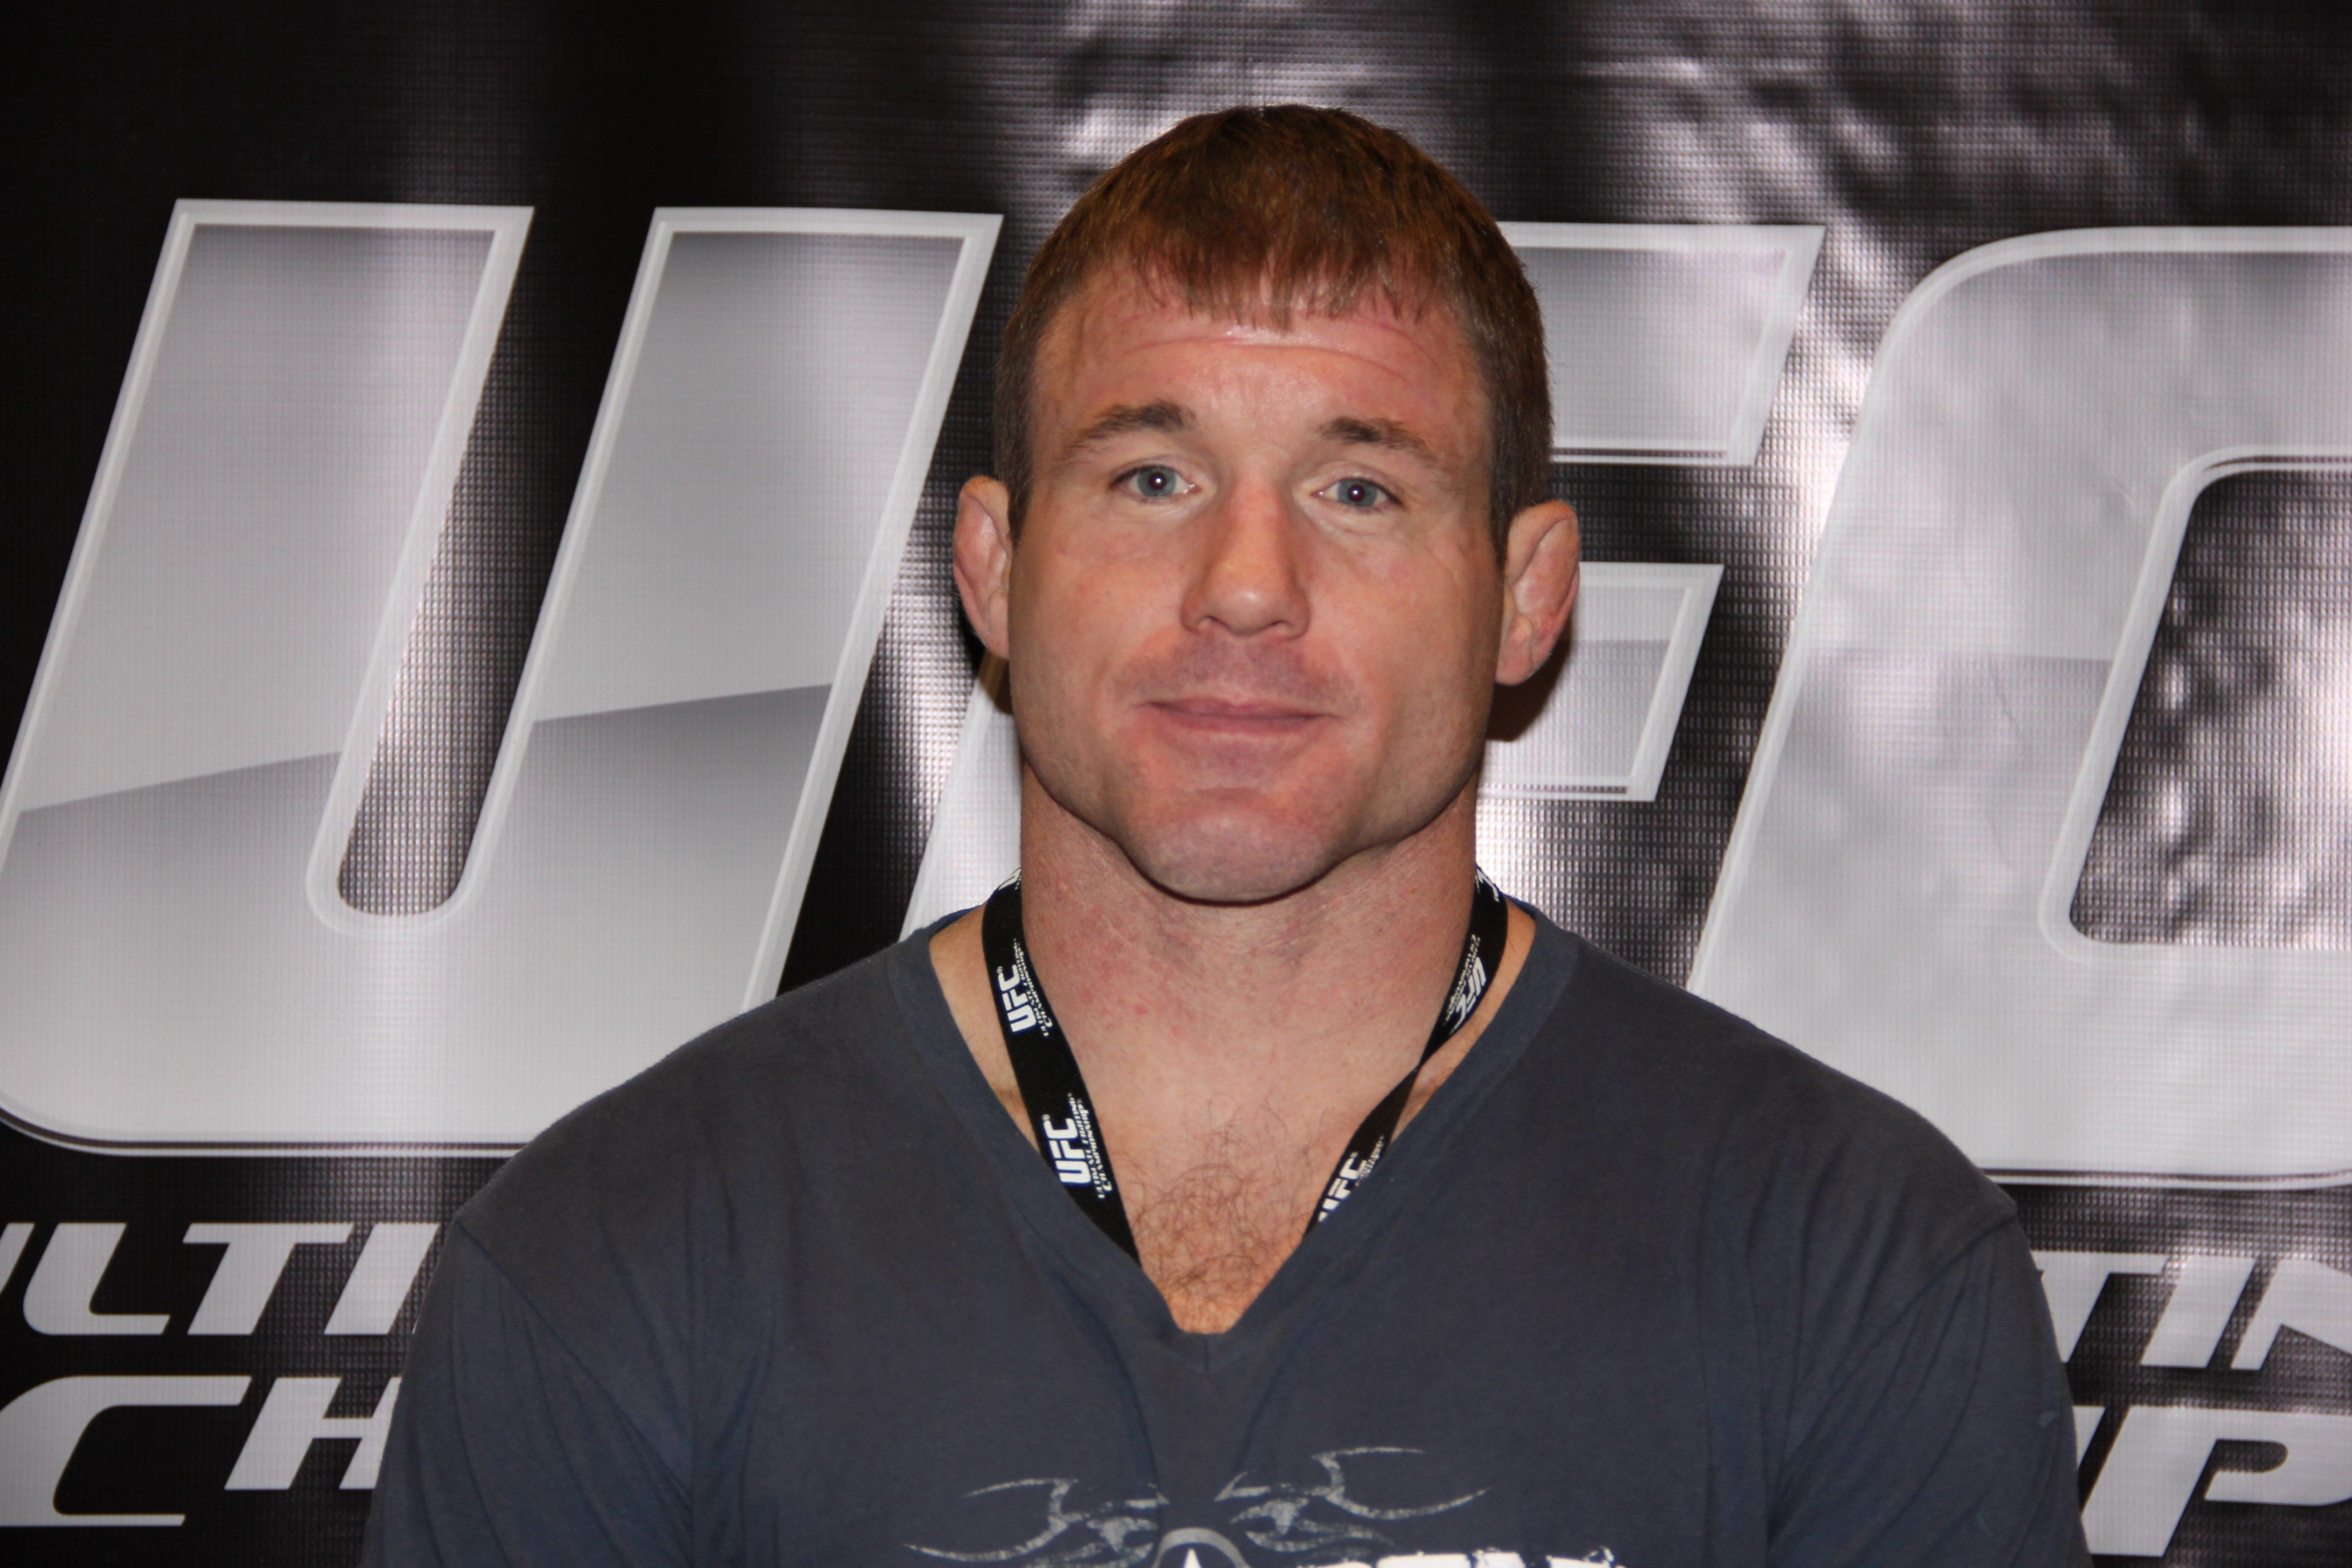 Matt Hughes | Known people - famous people news and biographies